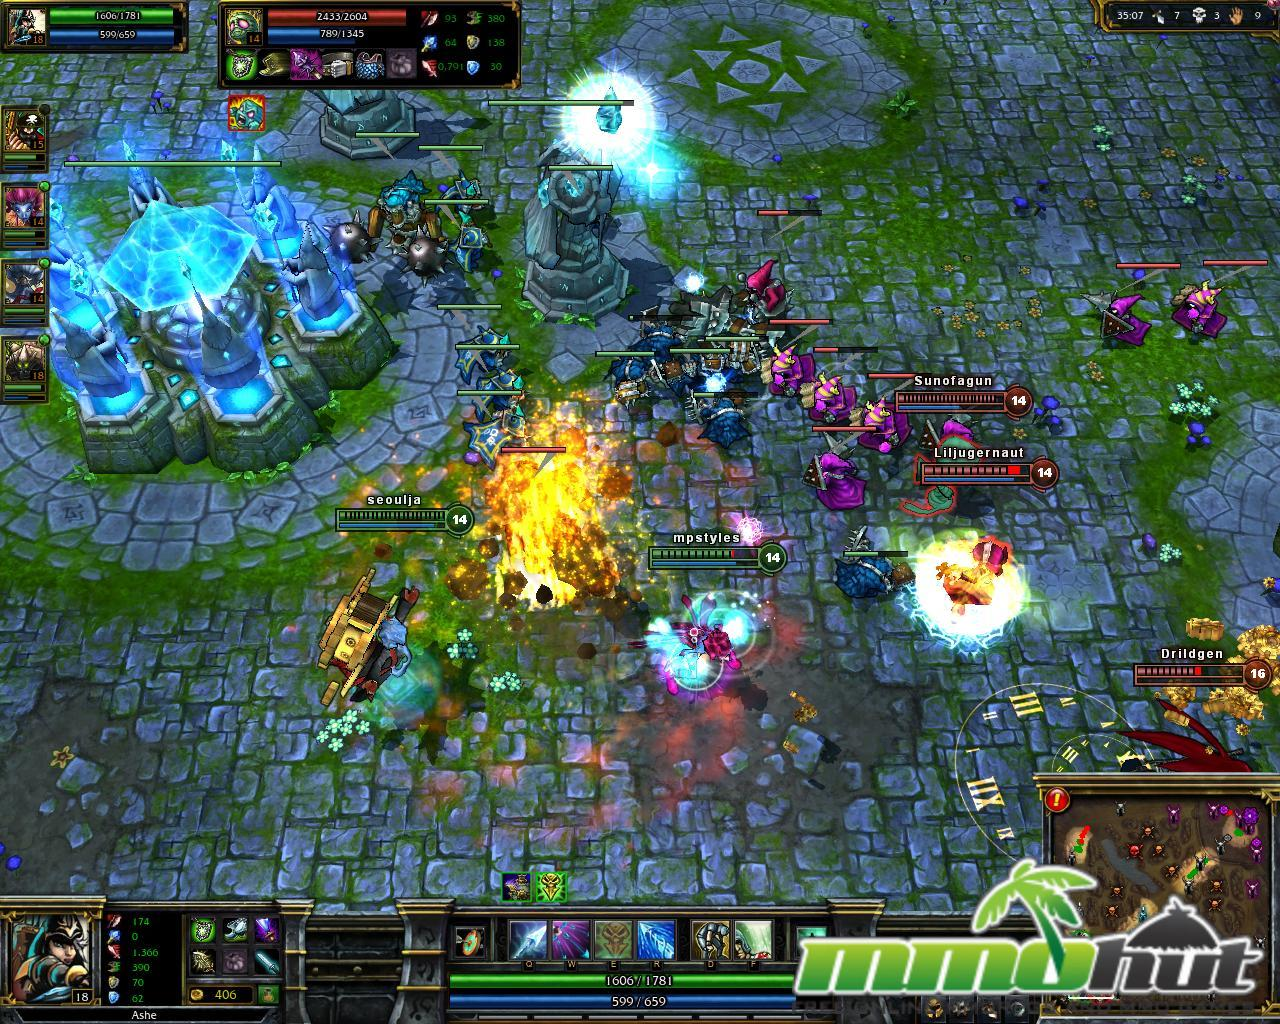 Como Empezar A Jugar A League Of Legends Abril 2013